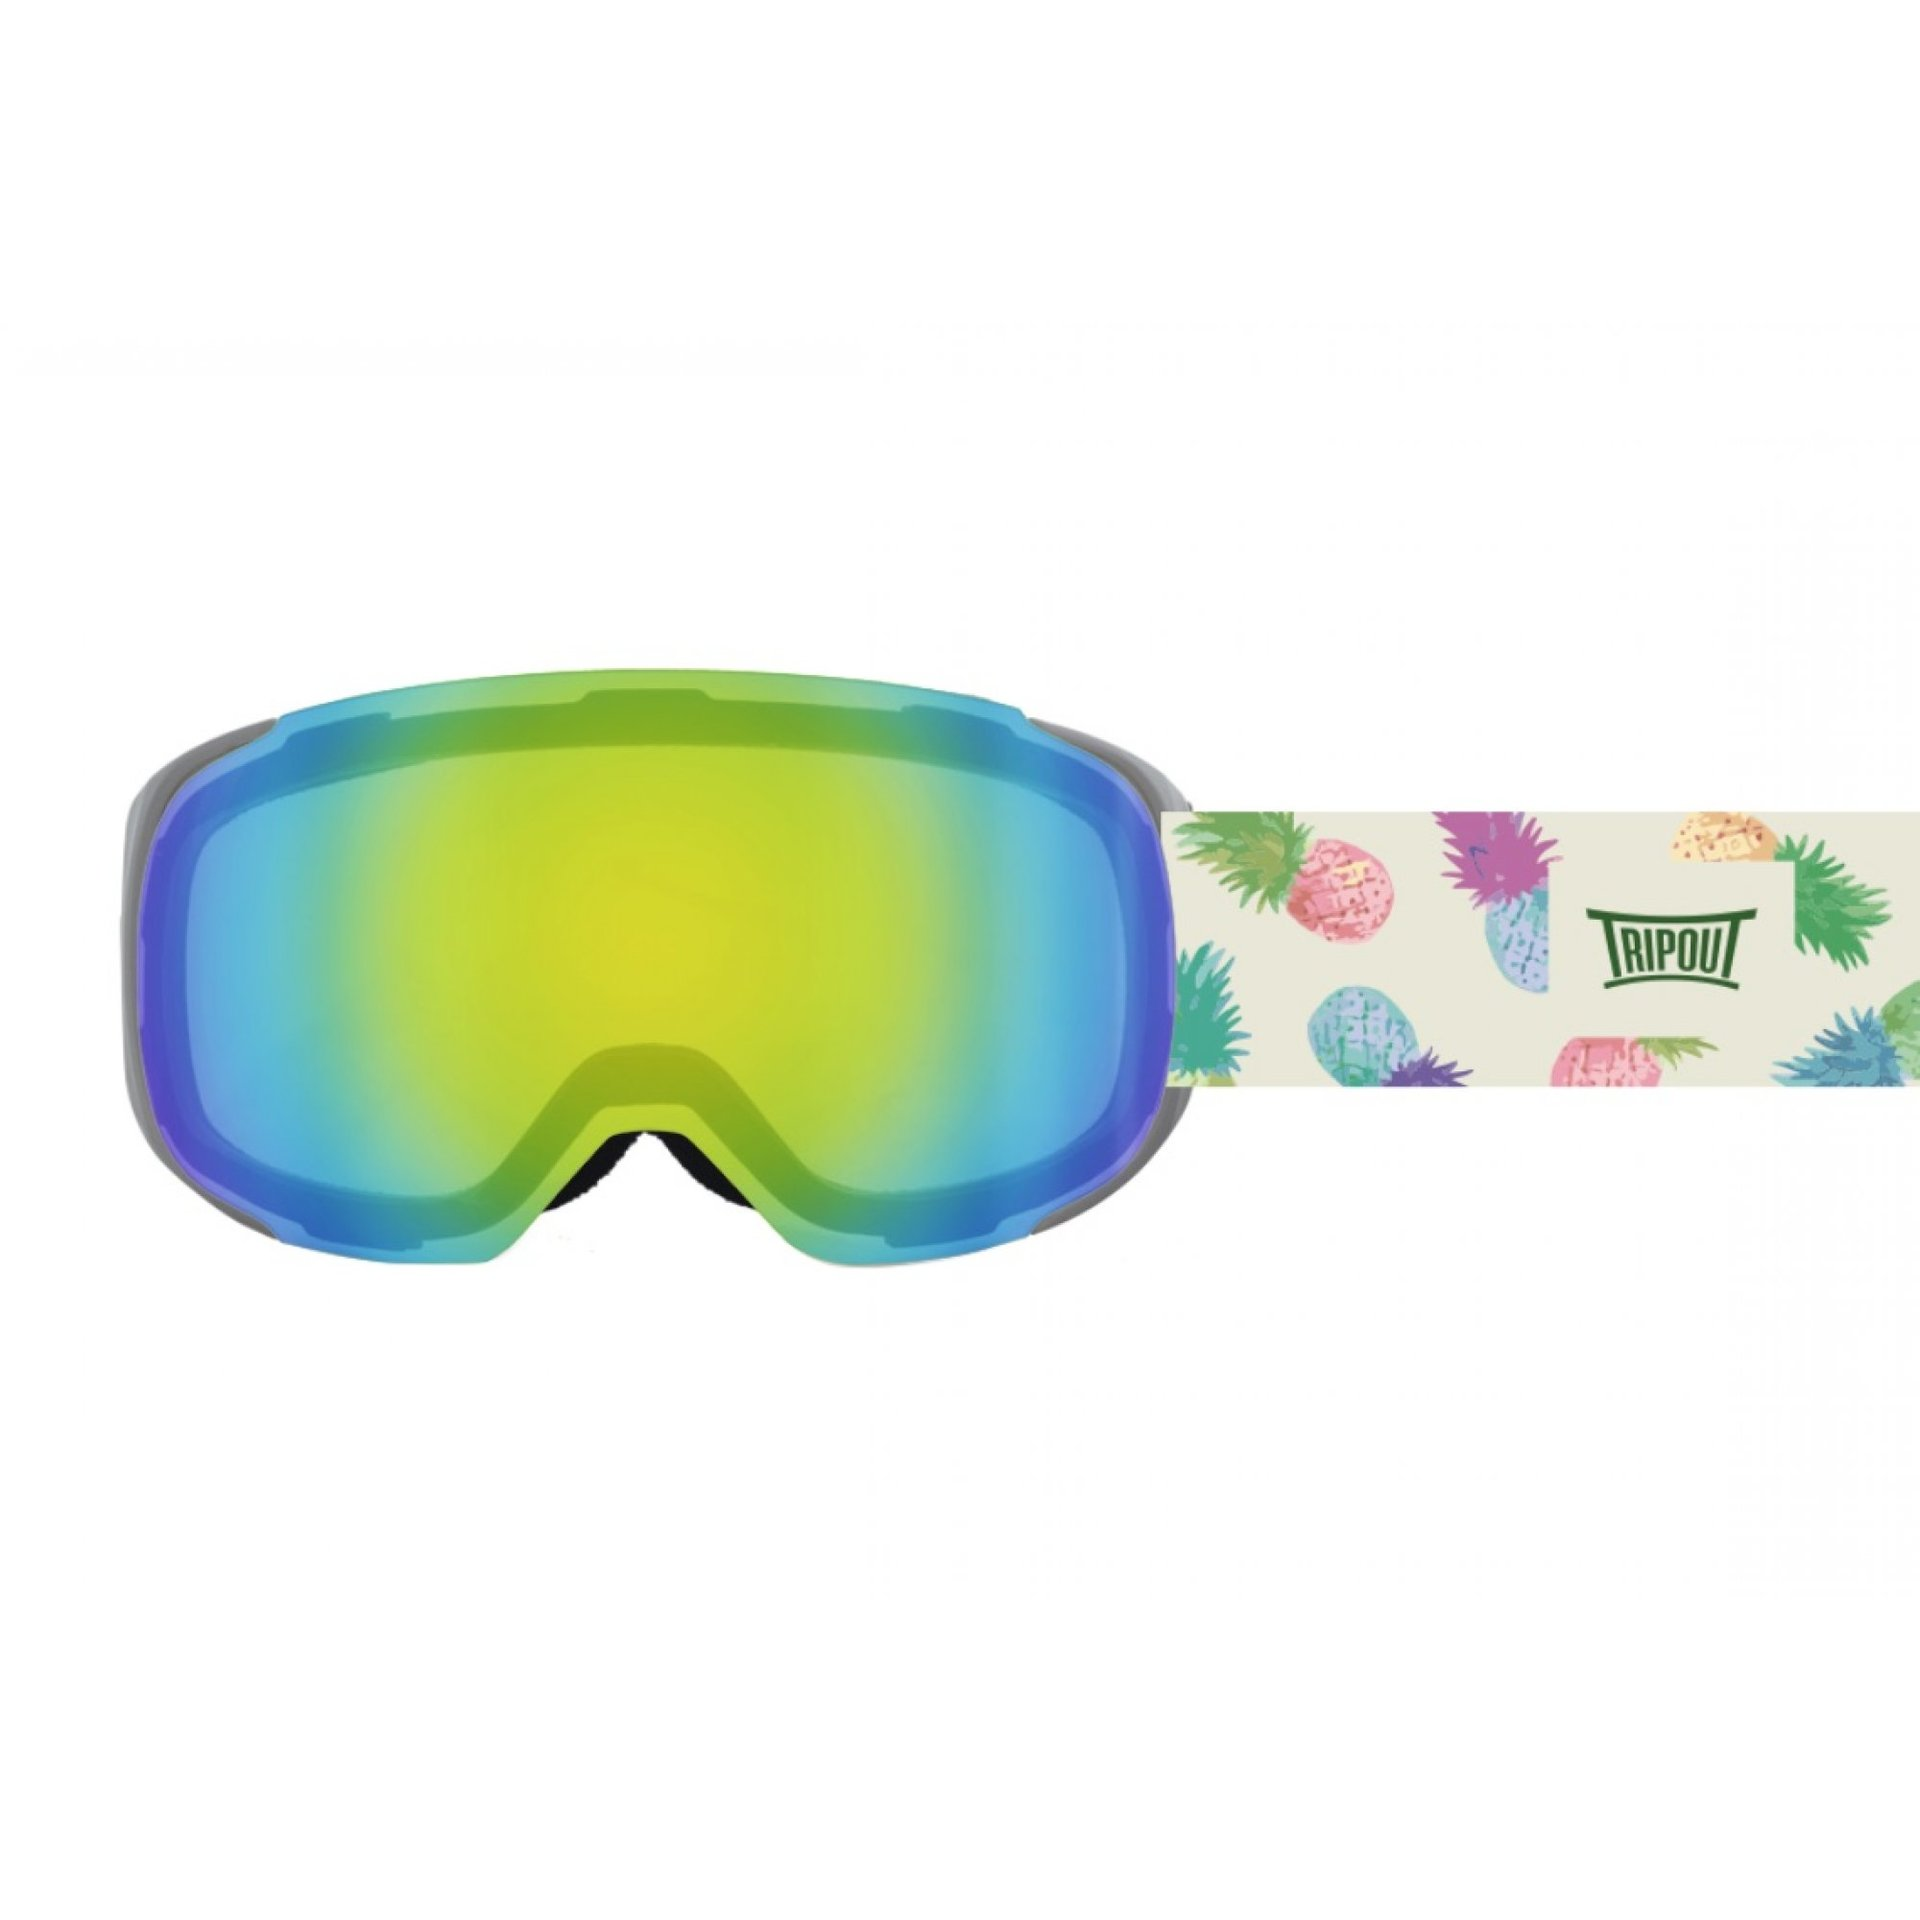 GOGLE TRIPOUT STEEZ PINEAPPLE|GREY|MINT MIRRORED 1